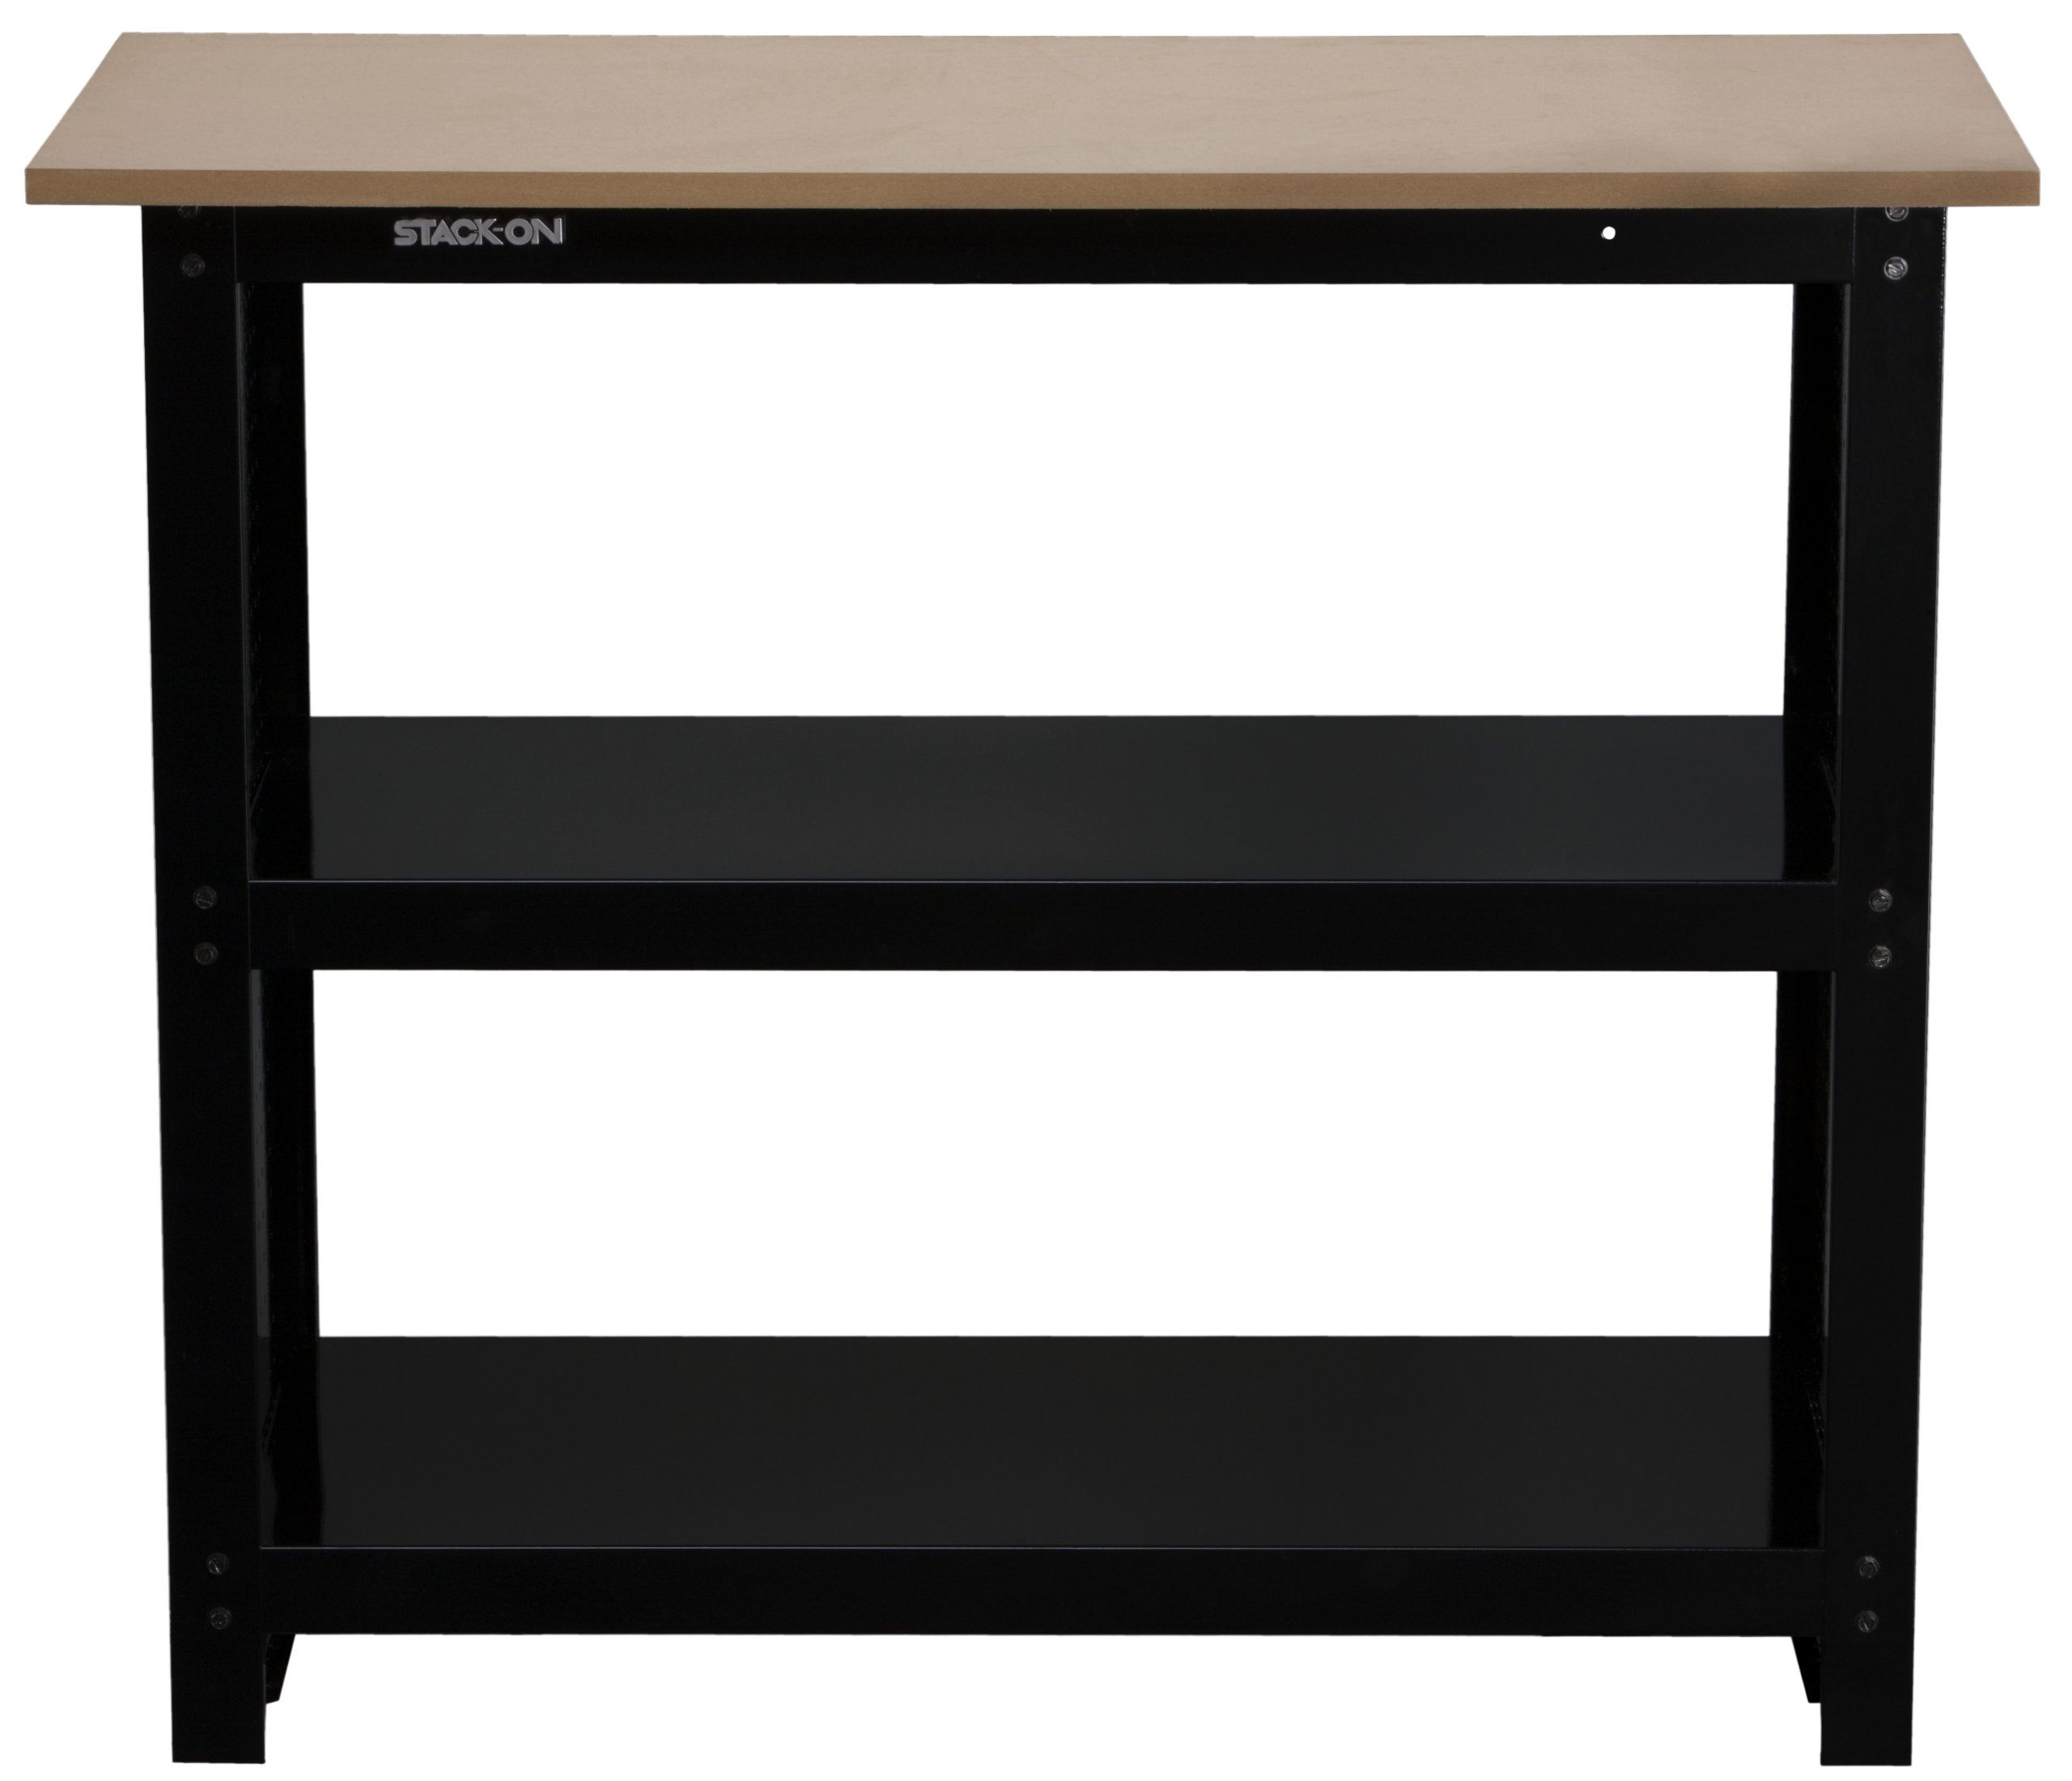 Stack-On SO-382B Heavy Duty Steel Workbench